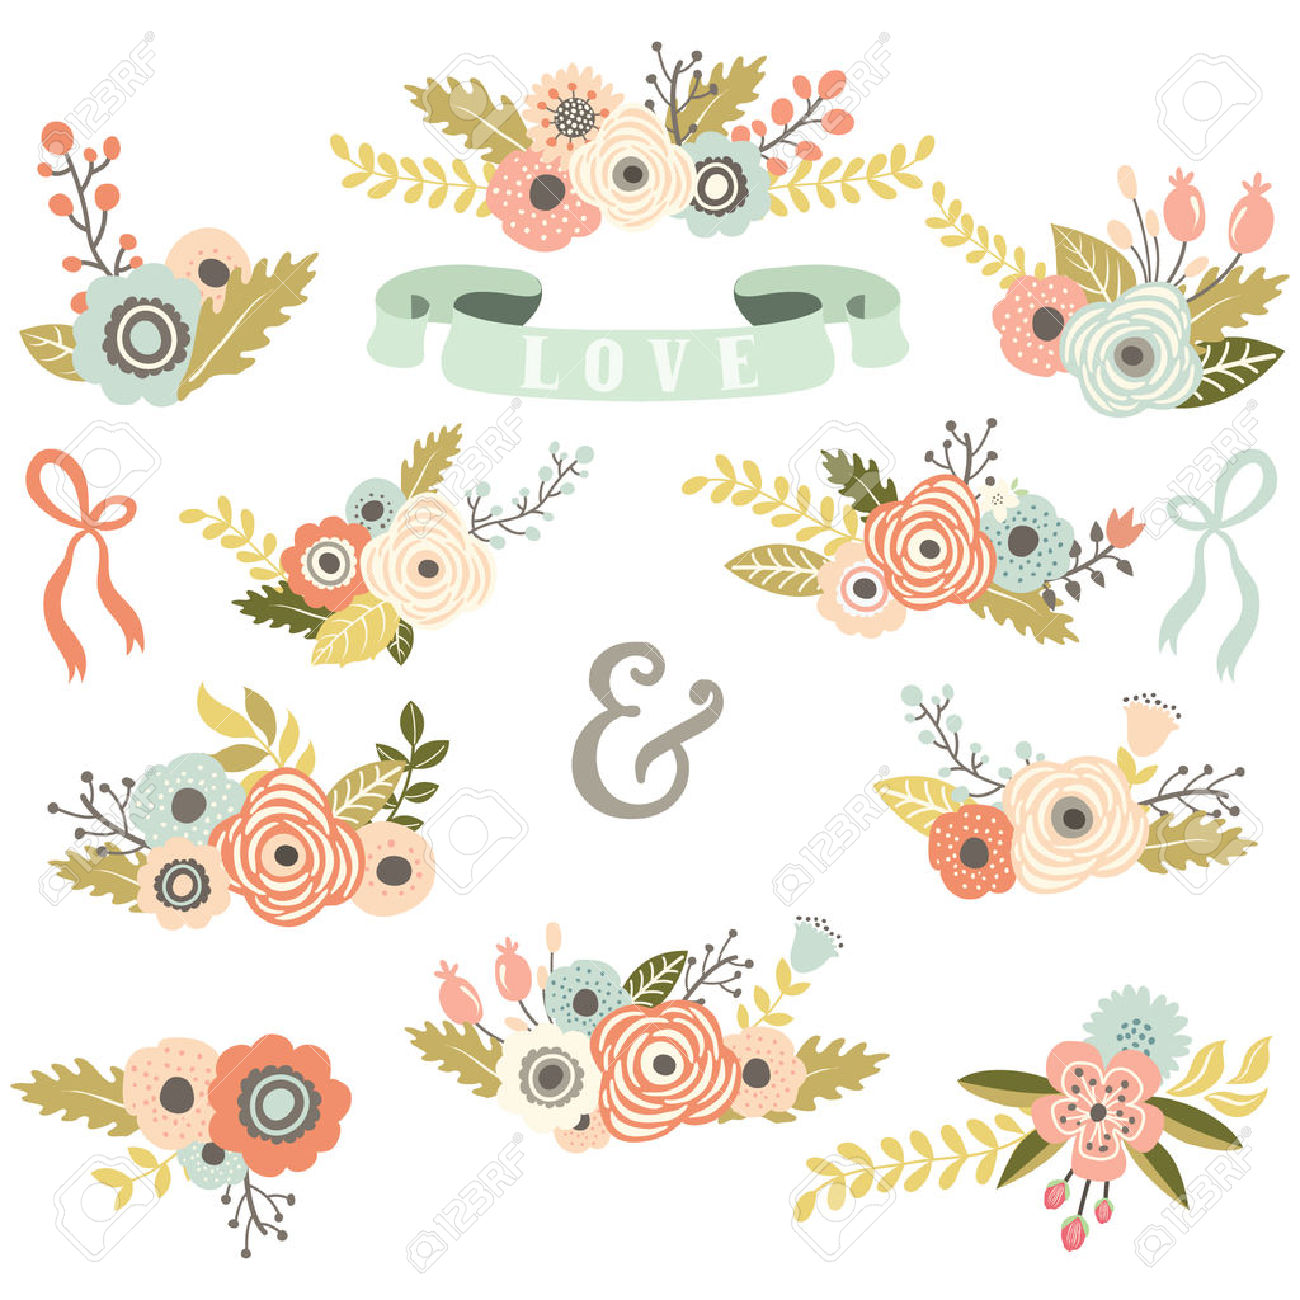 1,378,151 Flower Stock Vector Illustration And Royalty Free Flower.